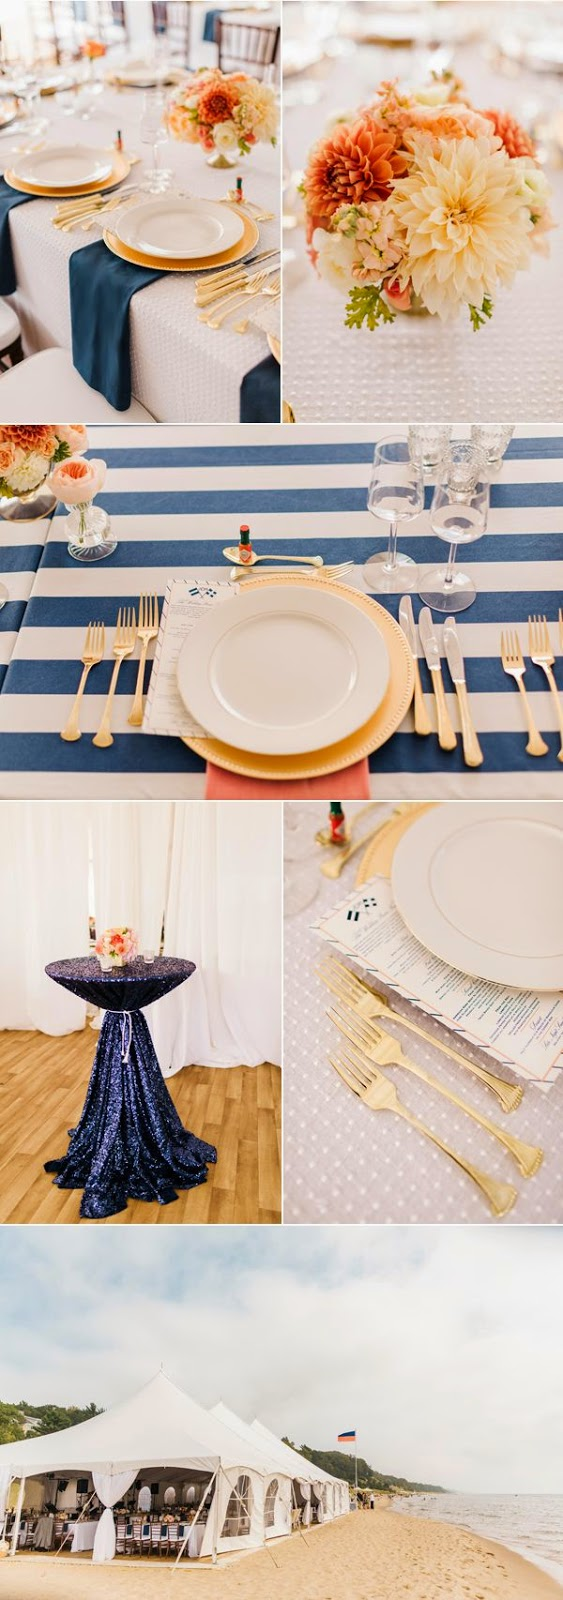 nautical table decorations for weddings wedding stuff ideas With nautical wedding table decor